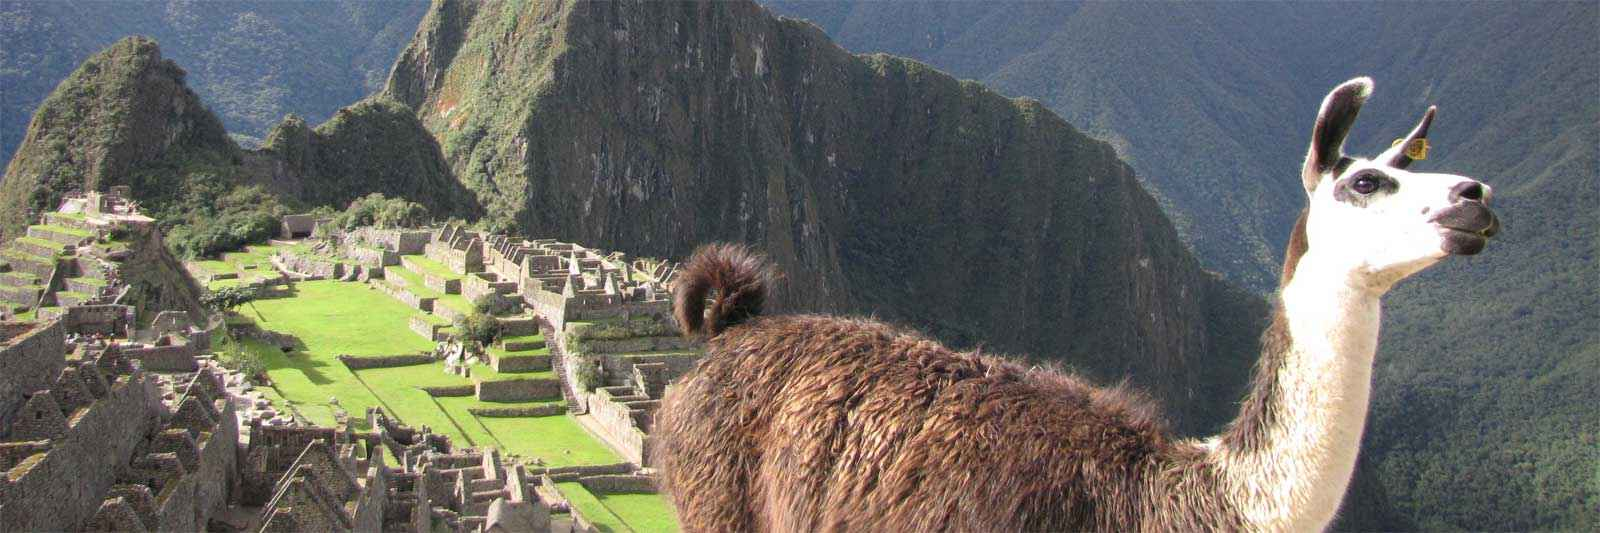 Llama in the foreground of Machu Picchu